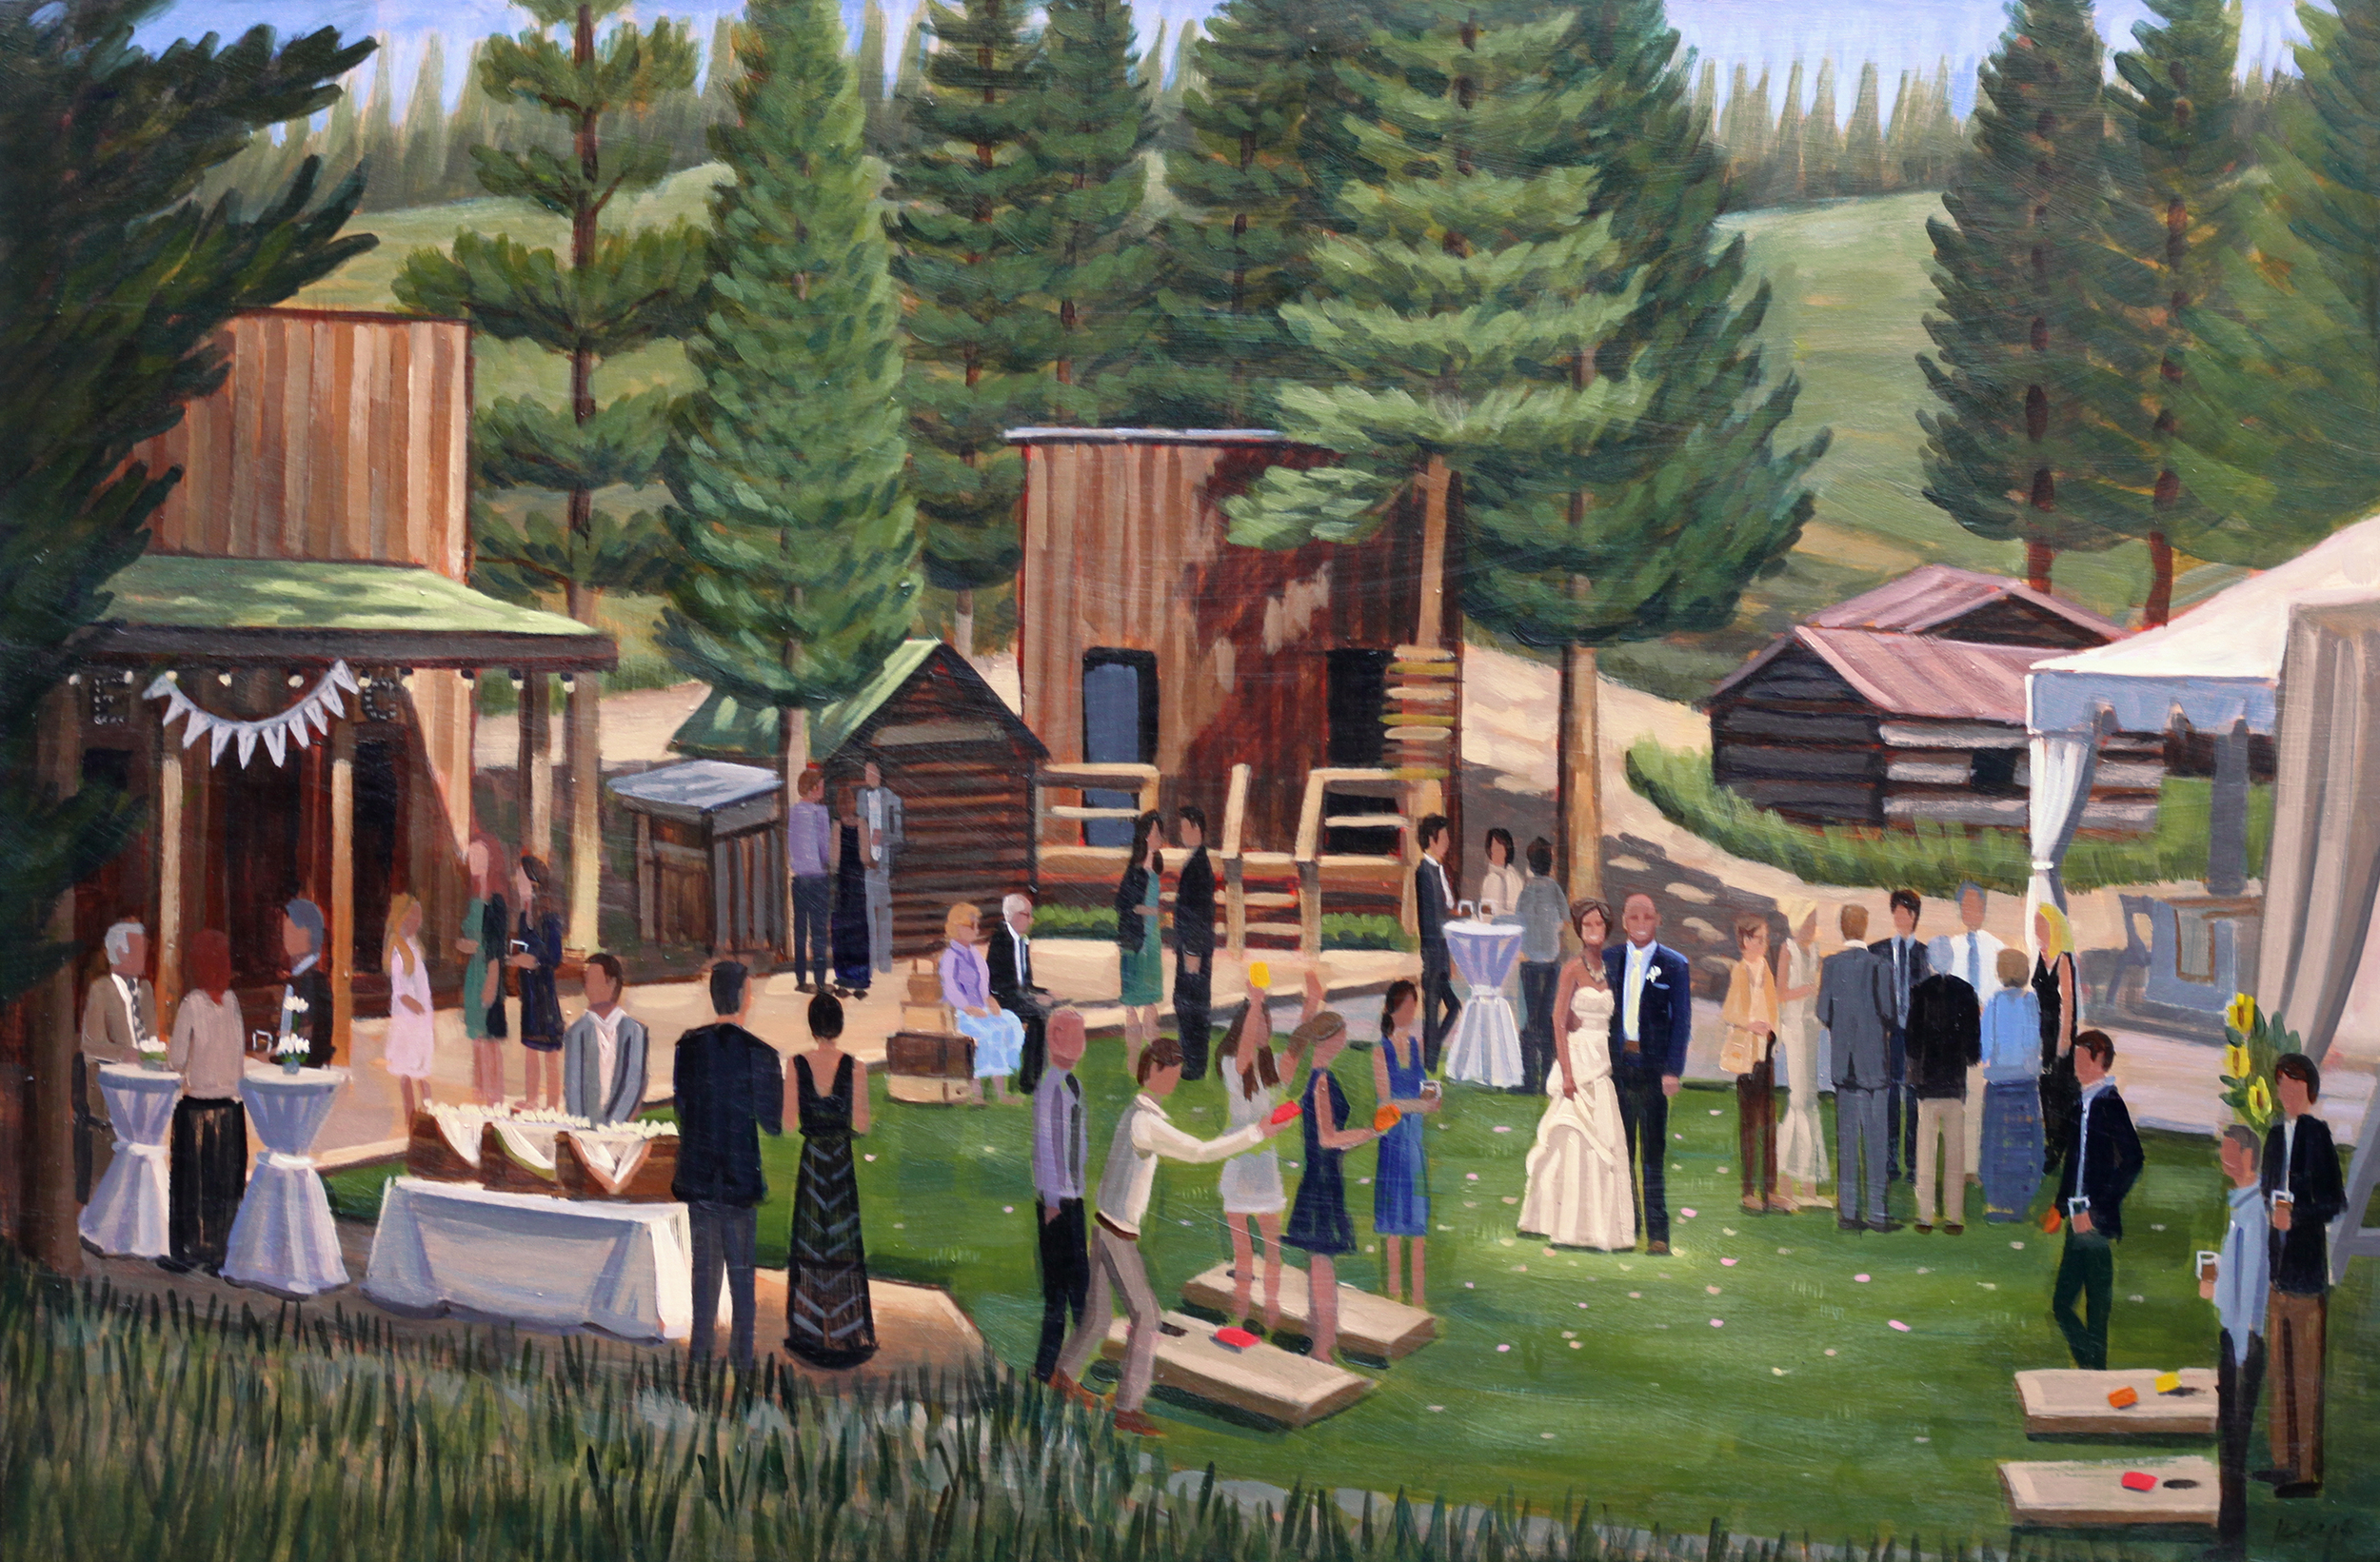 Chris and Erin | 24 x 36 in. | Live Wedding Painting